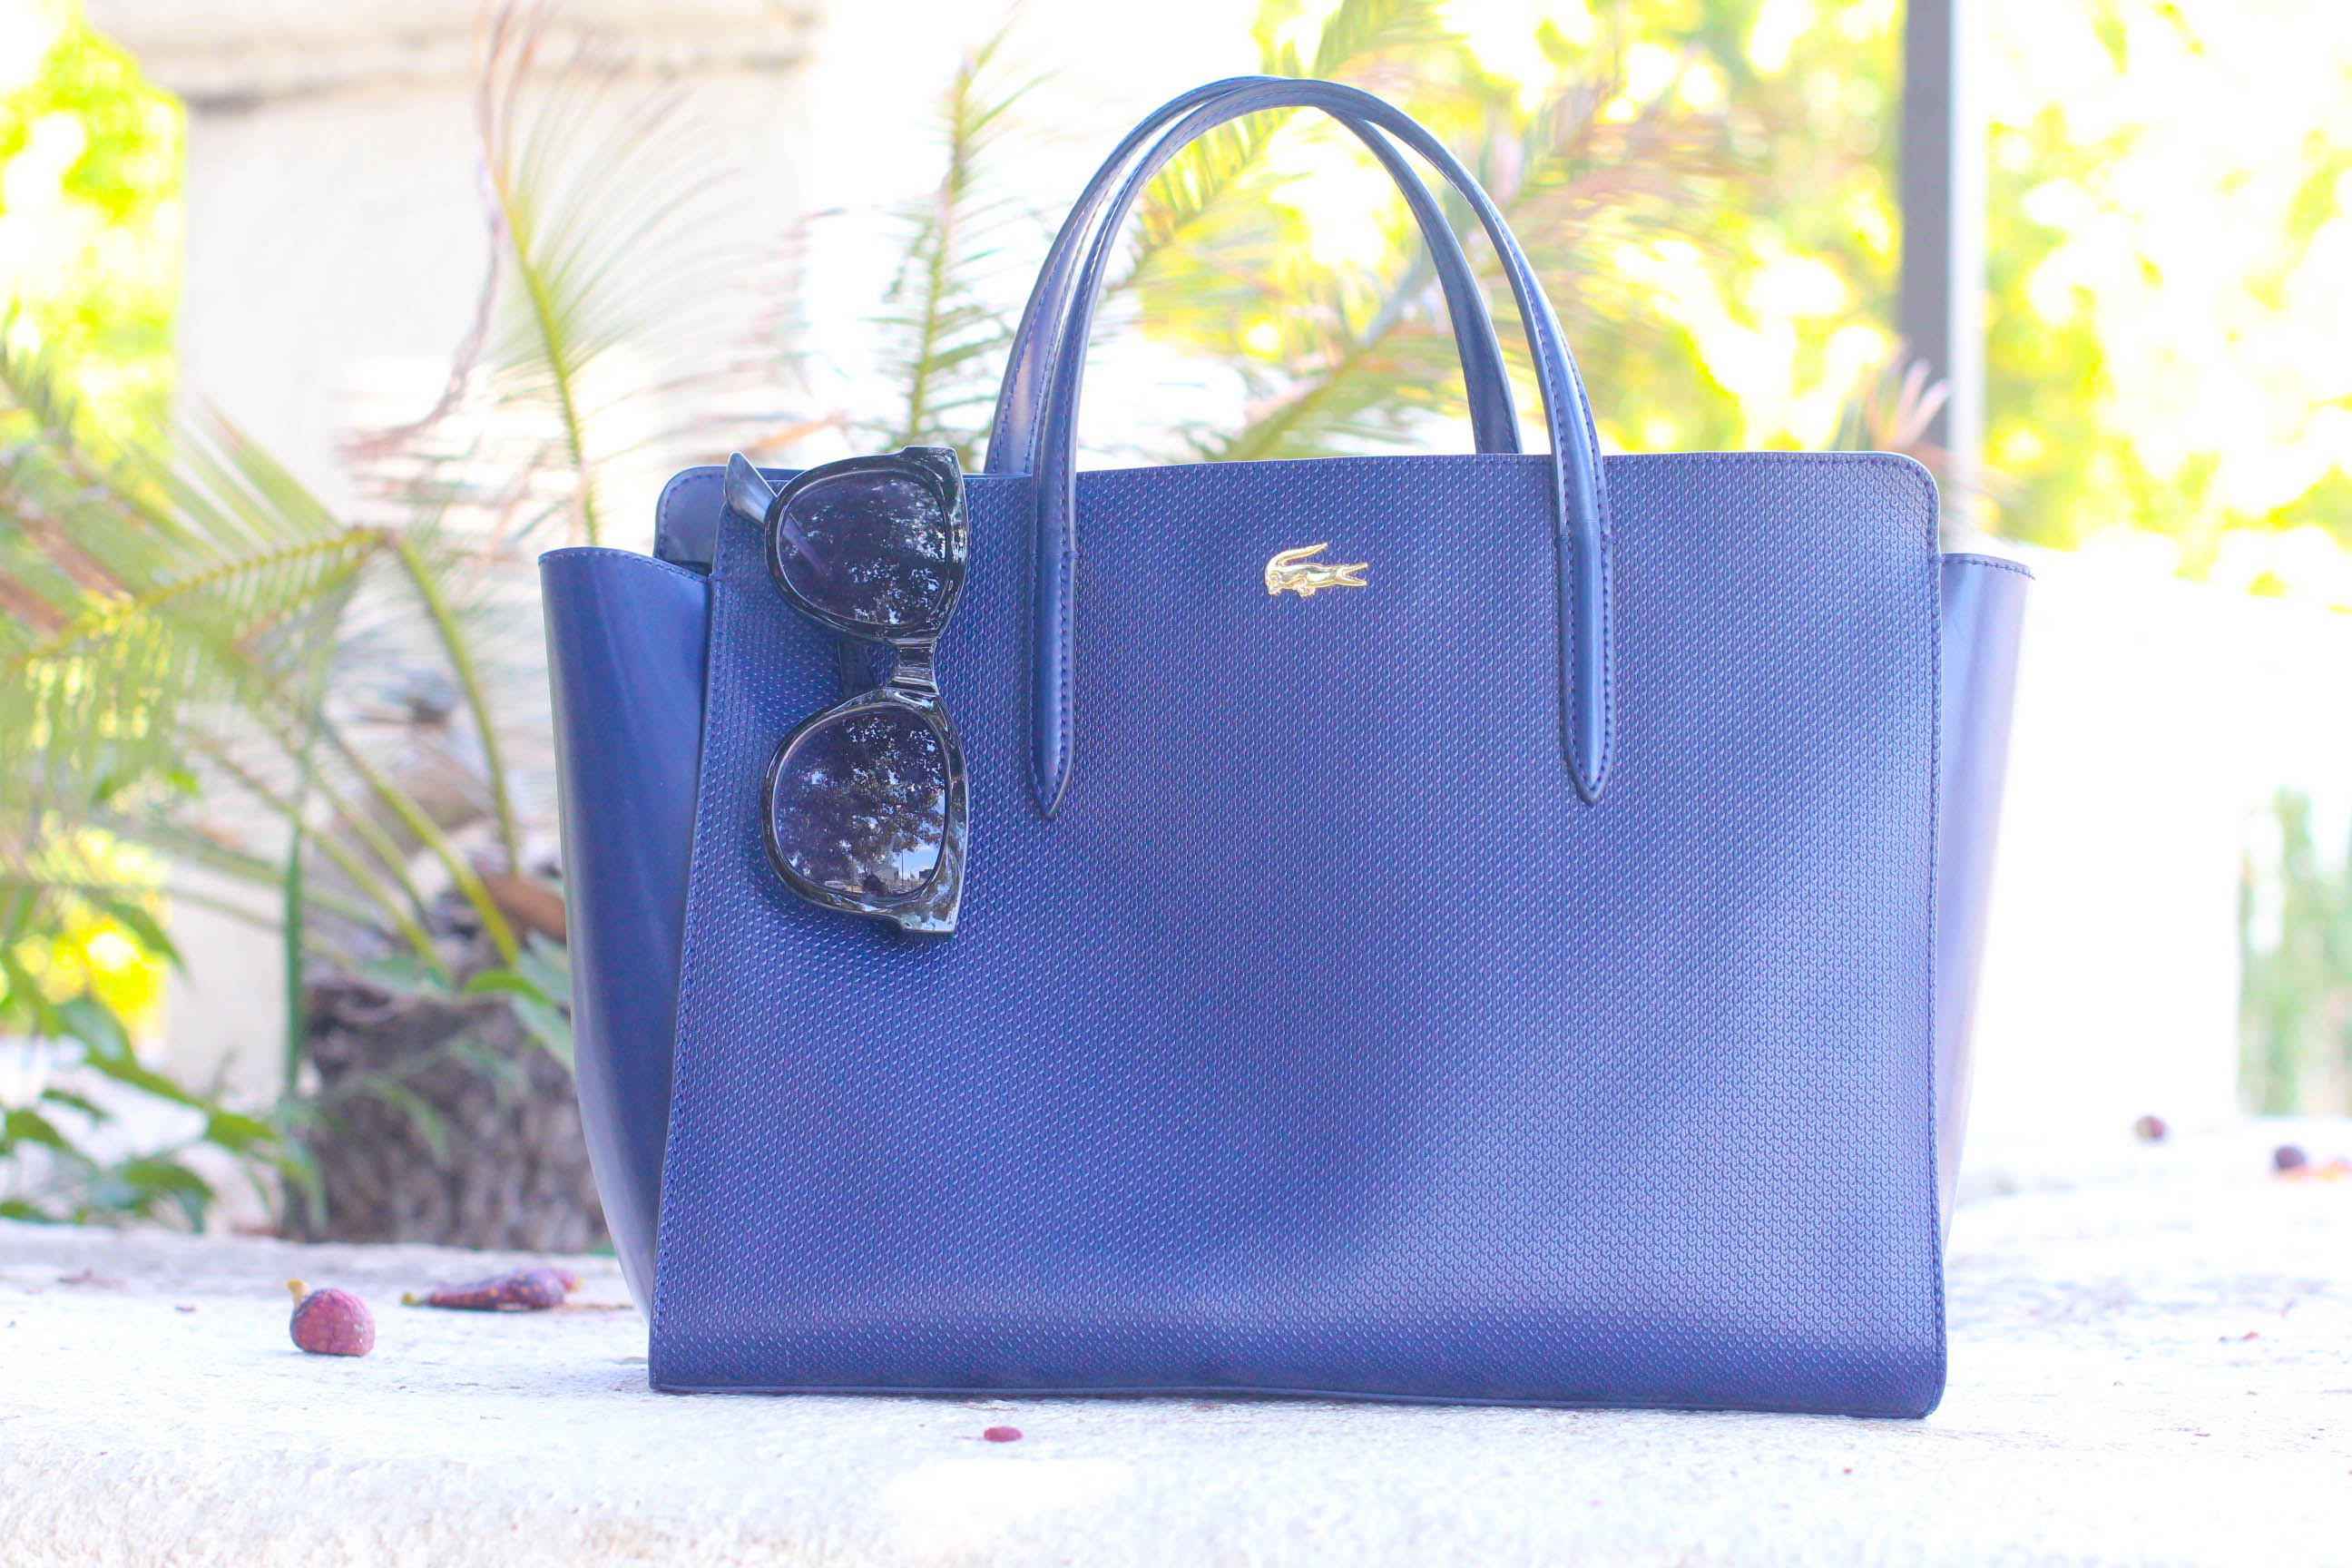 missyonmadison, missy on madison instagram, melissa tierney, la blogger, fashion blogger, style blogger, beverly hills, beverly hills style, navy aline dress, navy blue a line dress, navy blue and white a line dress, nautical dress, lacoste tote bag, lacoste satchel, navy lacoste bag, monogram necklace, black wayfarer sunglasses, white pointed toe pumps, white pumps, spring style, what to wear for an interview, spring style for work, office style, blue a line dress, white skinny belt,